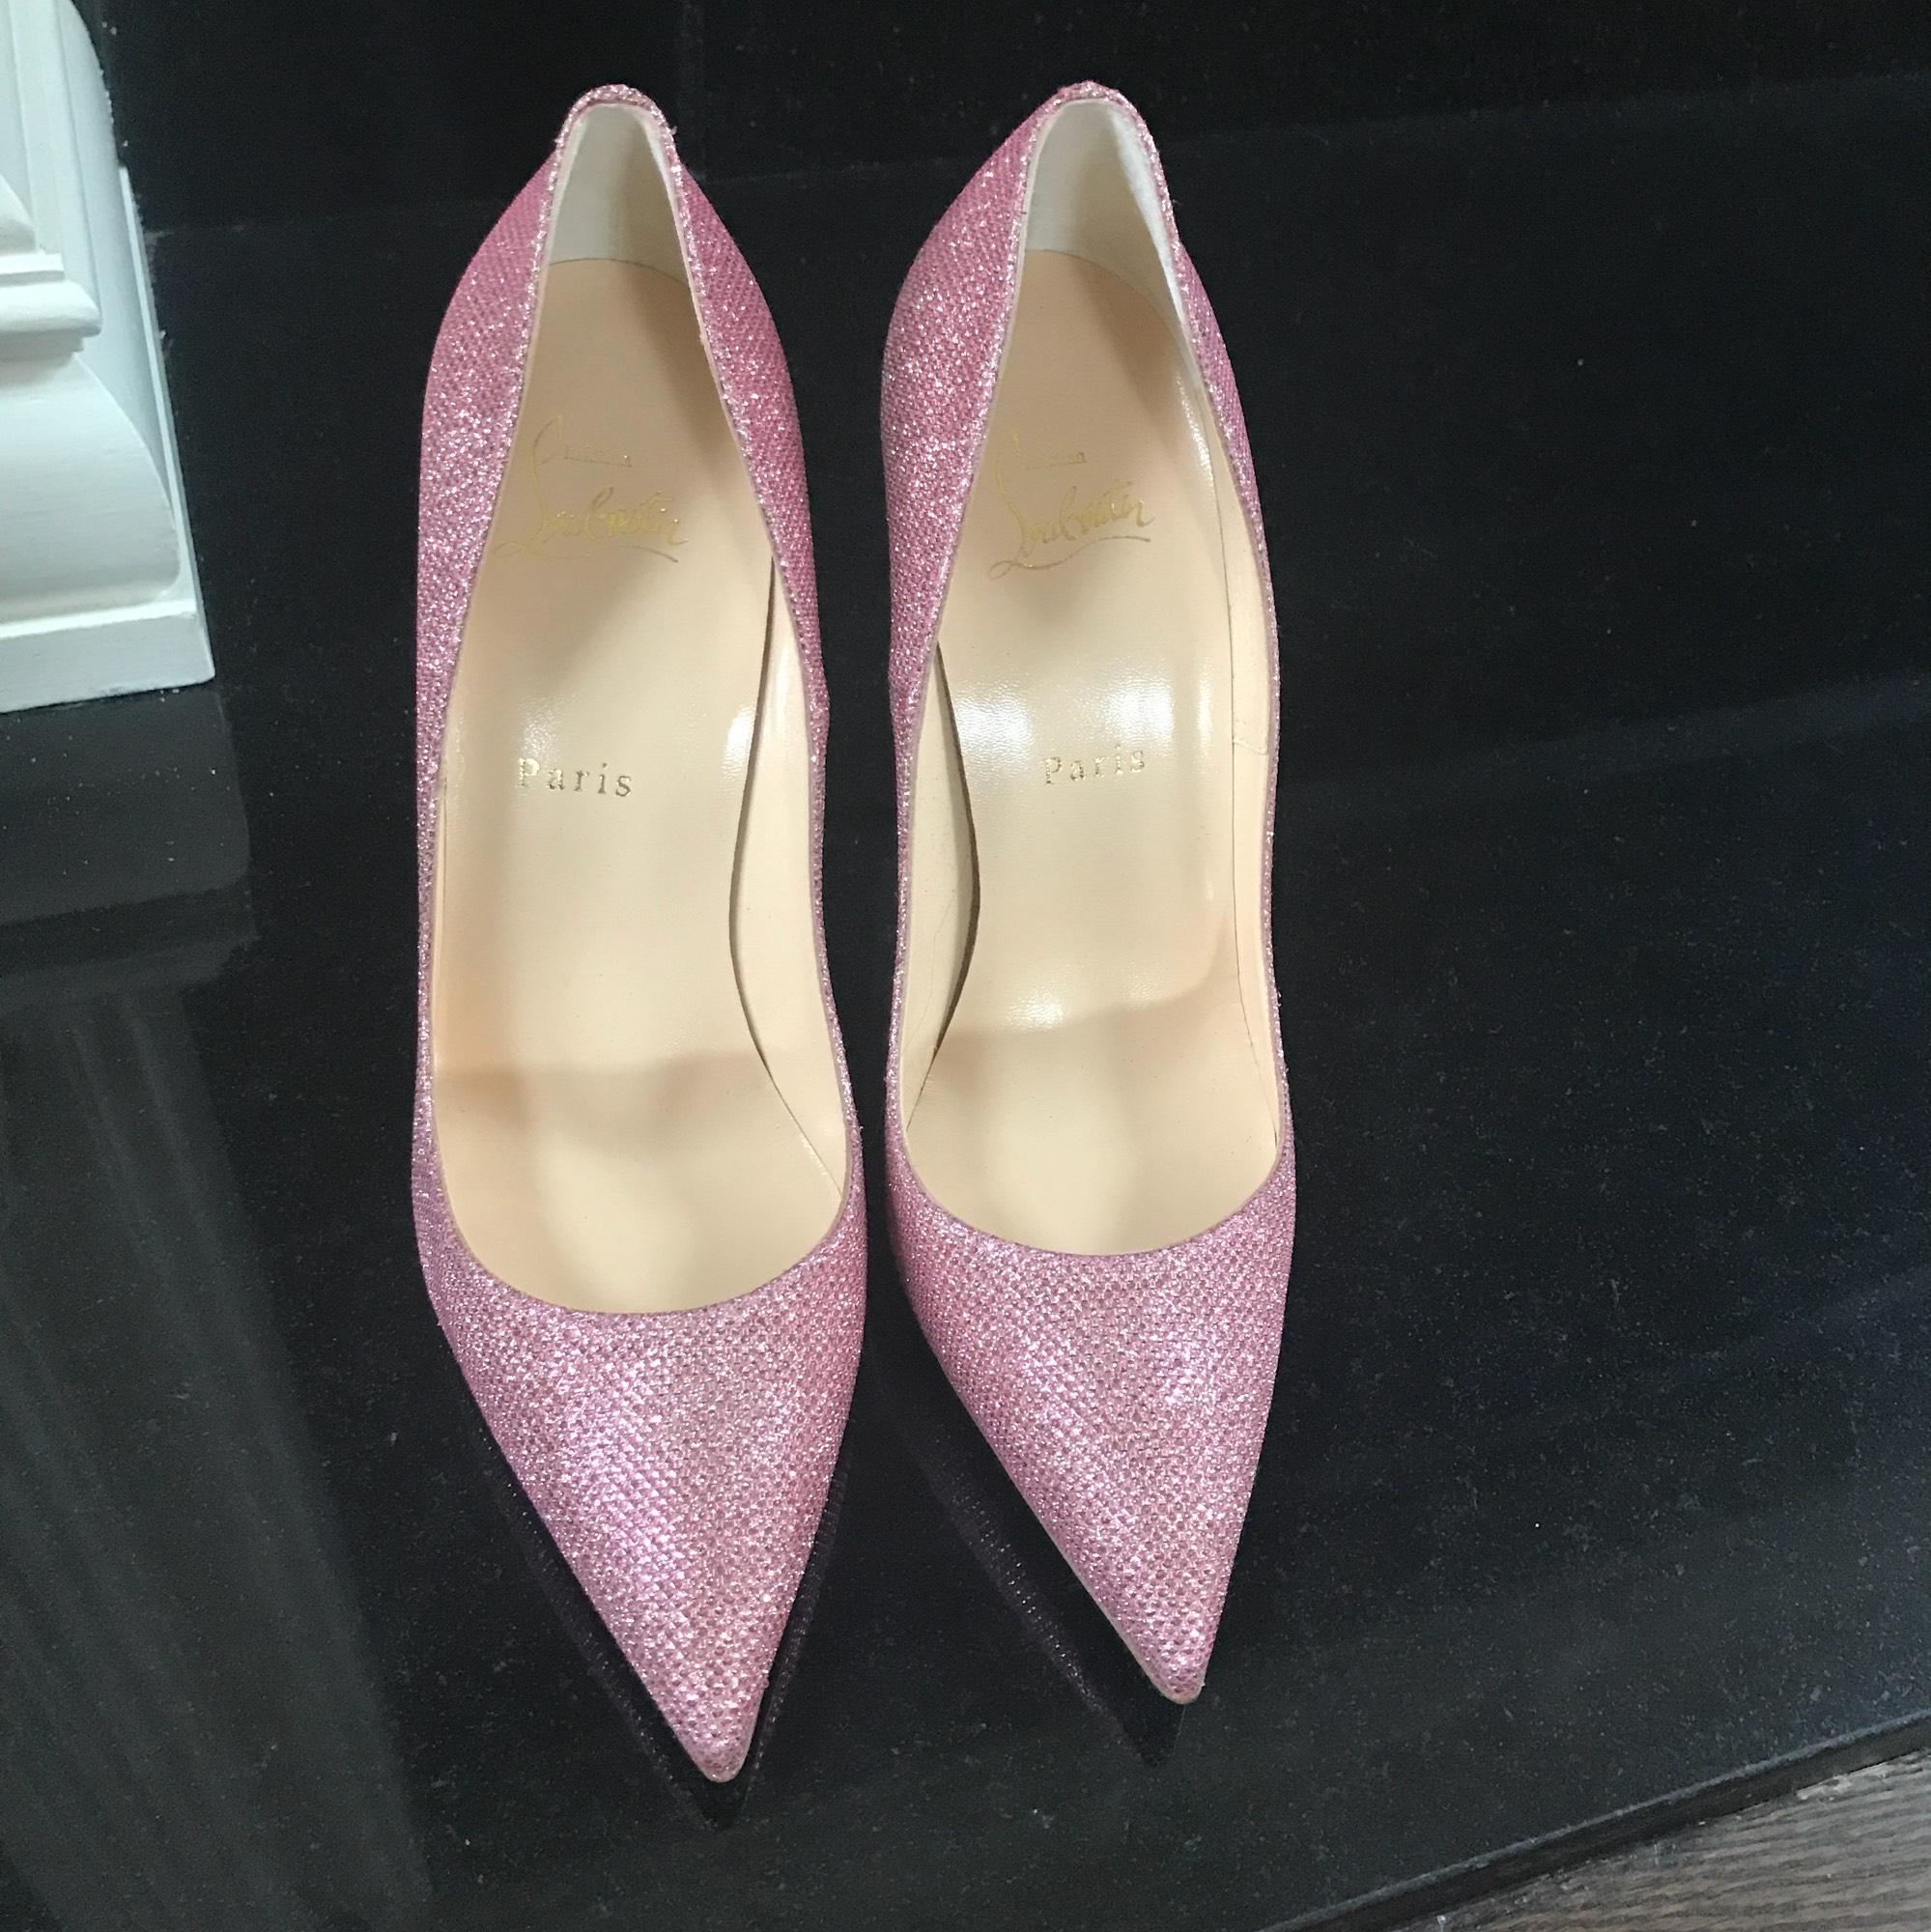 christian rose louboutin tisse si kate poudre rose christian à paillettes stiletto 3b769c